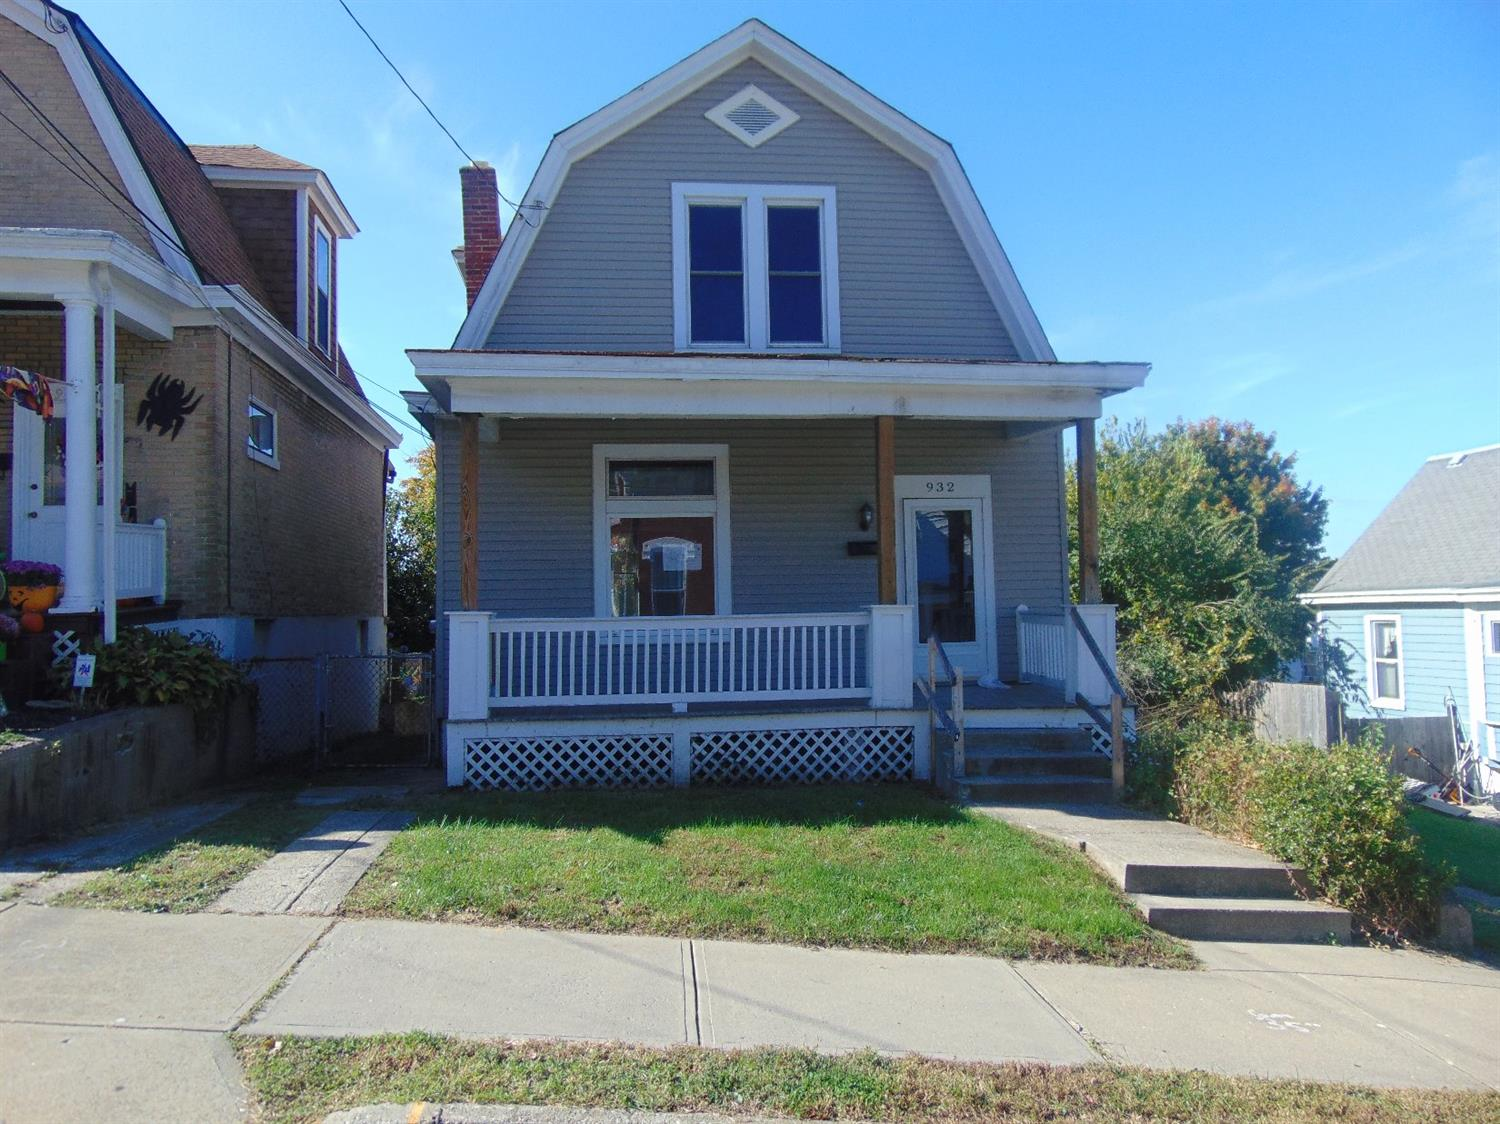 real estate photo 1 for 932 Thornton St Dayton, KY 41074